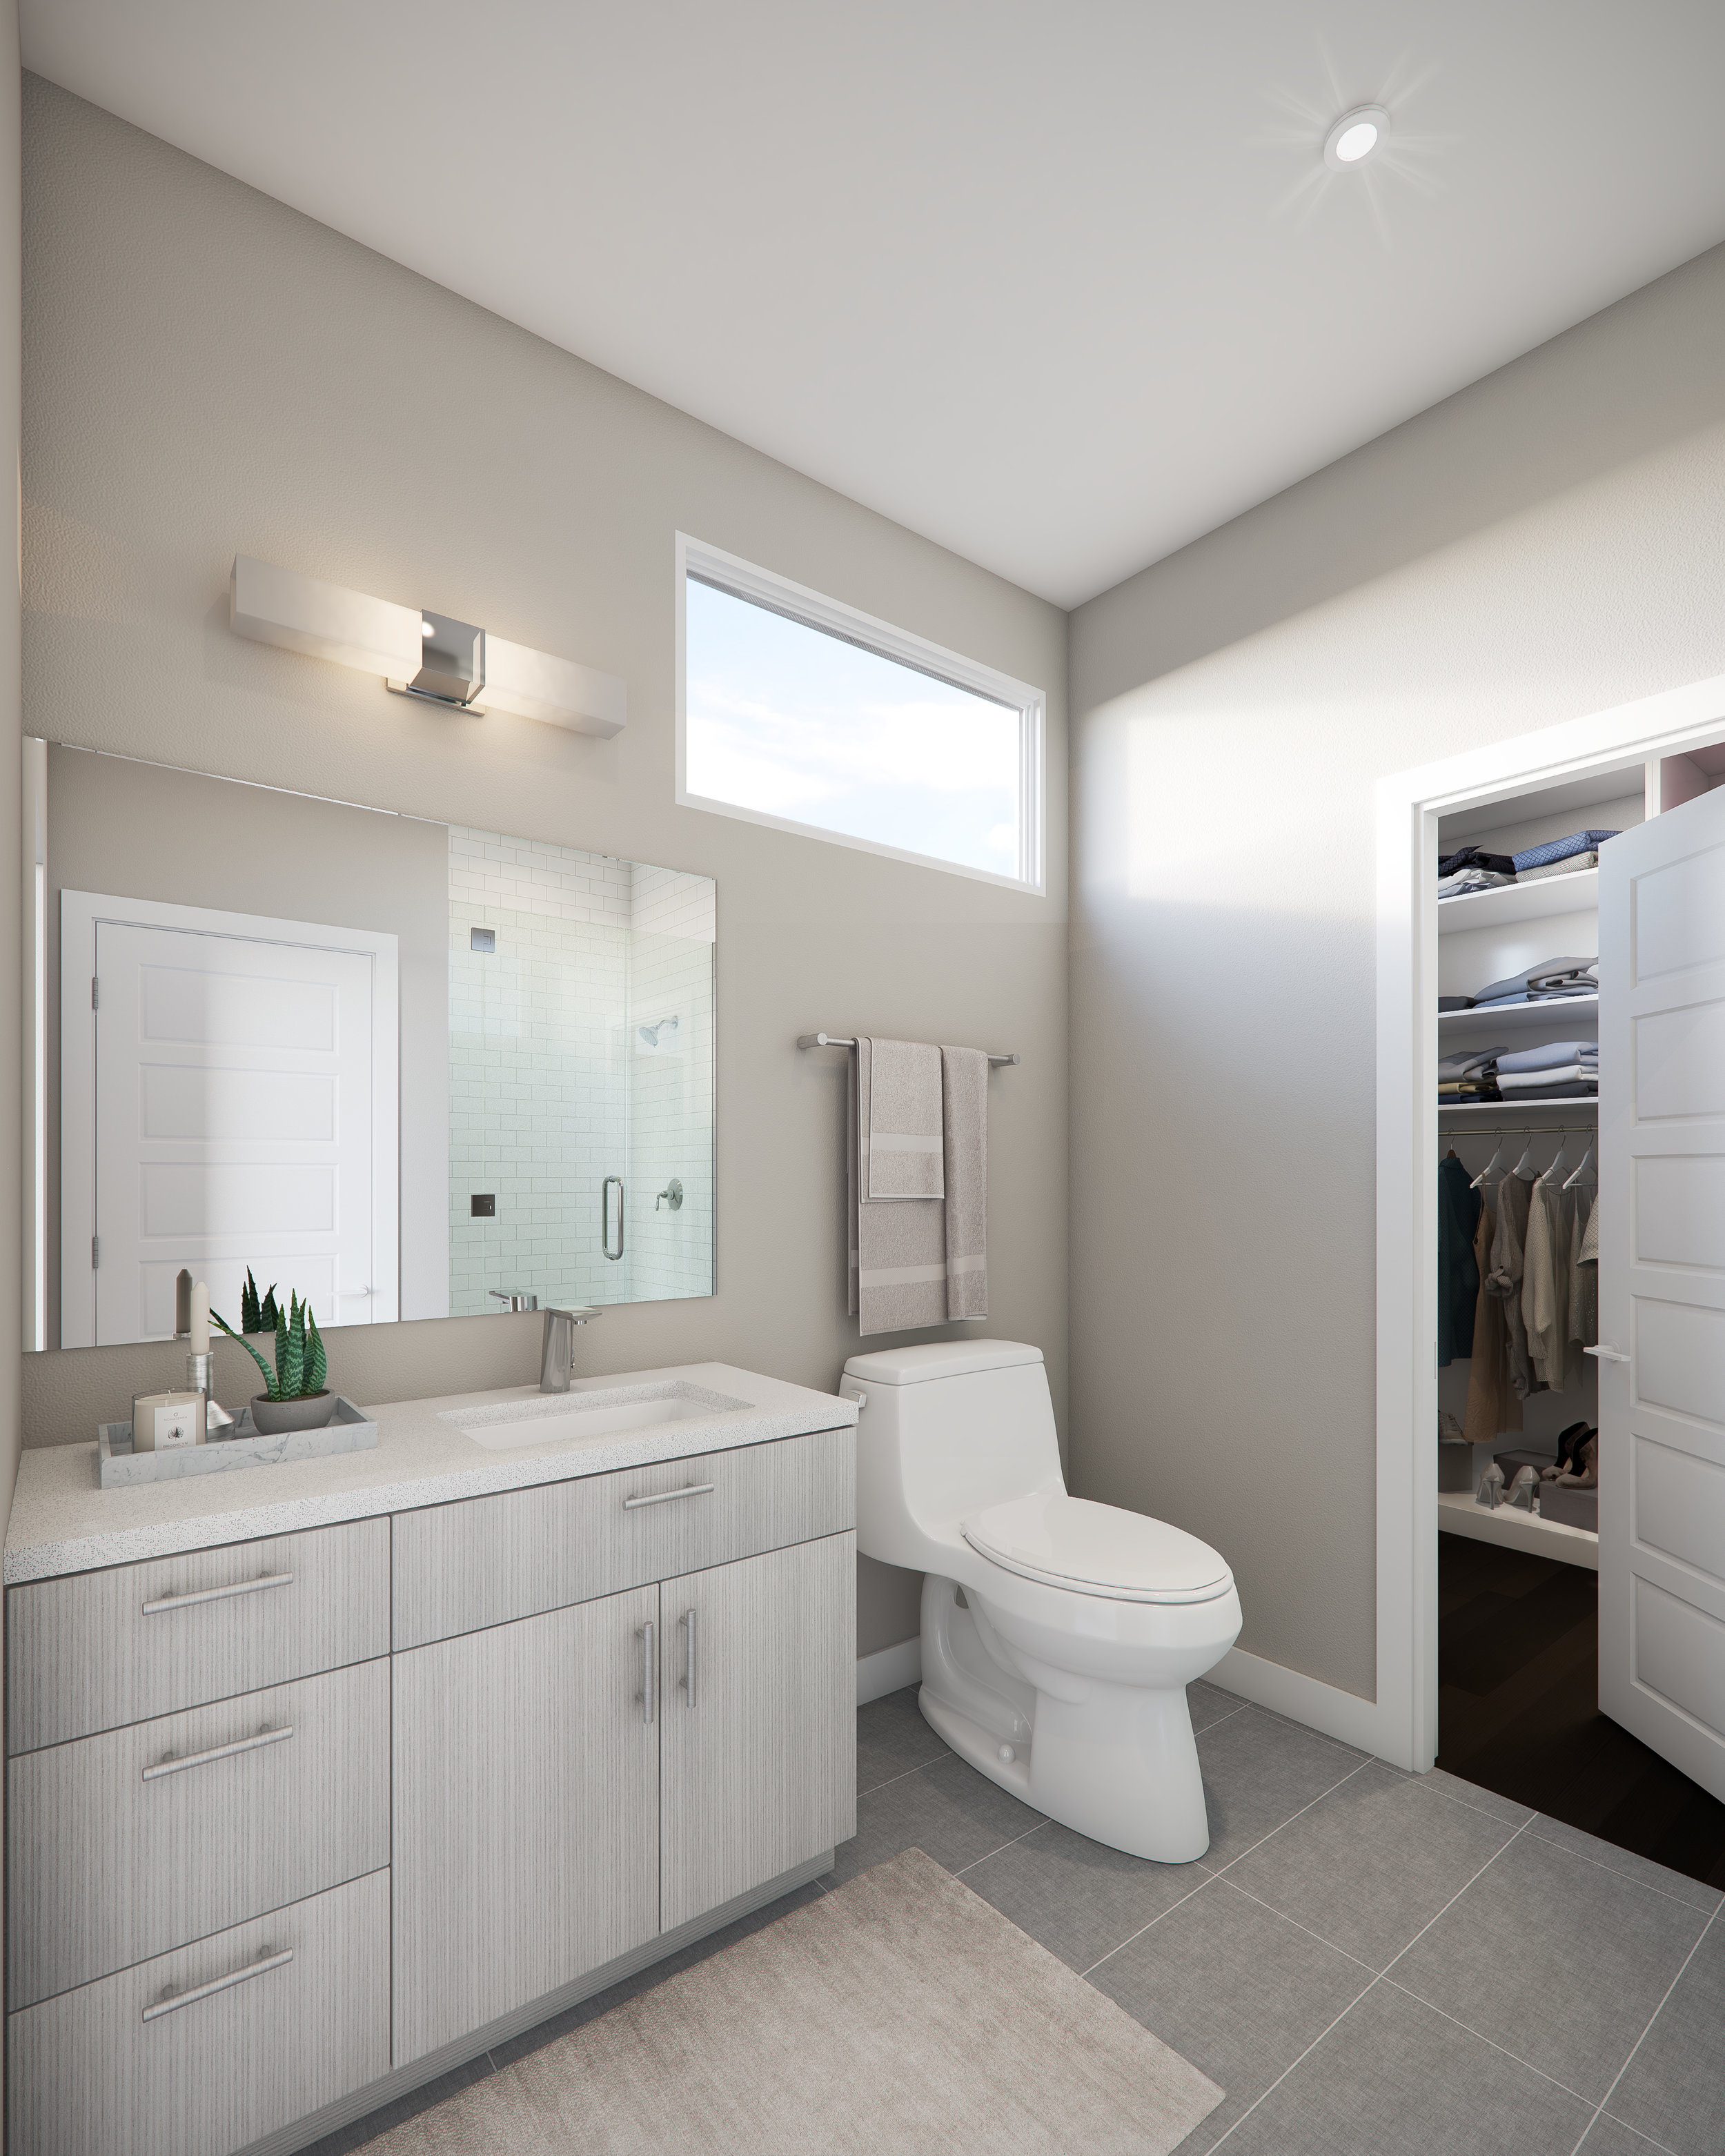 170628_StoneAcre_1306West_Bathroom Interior.jpg